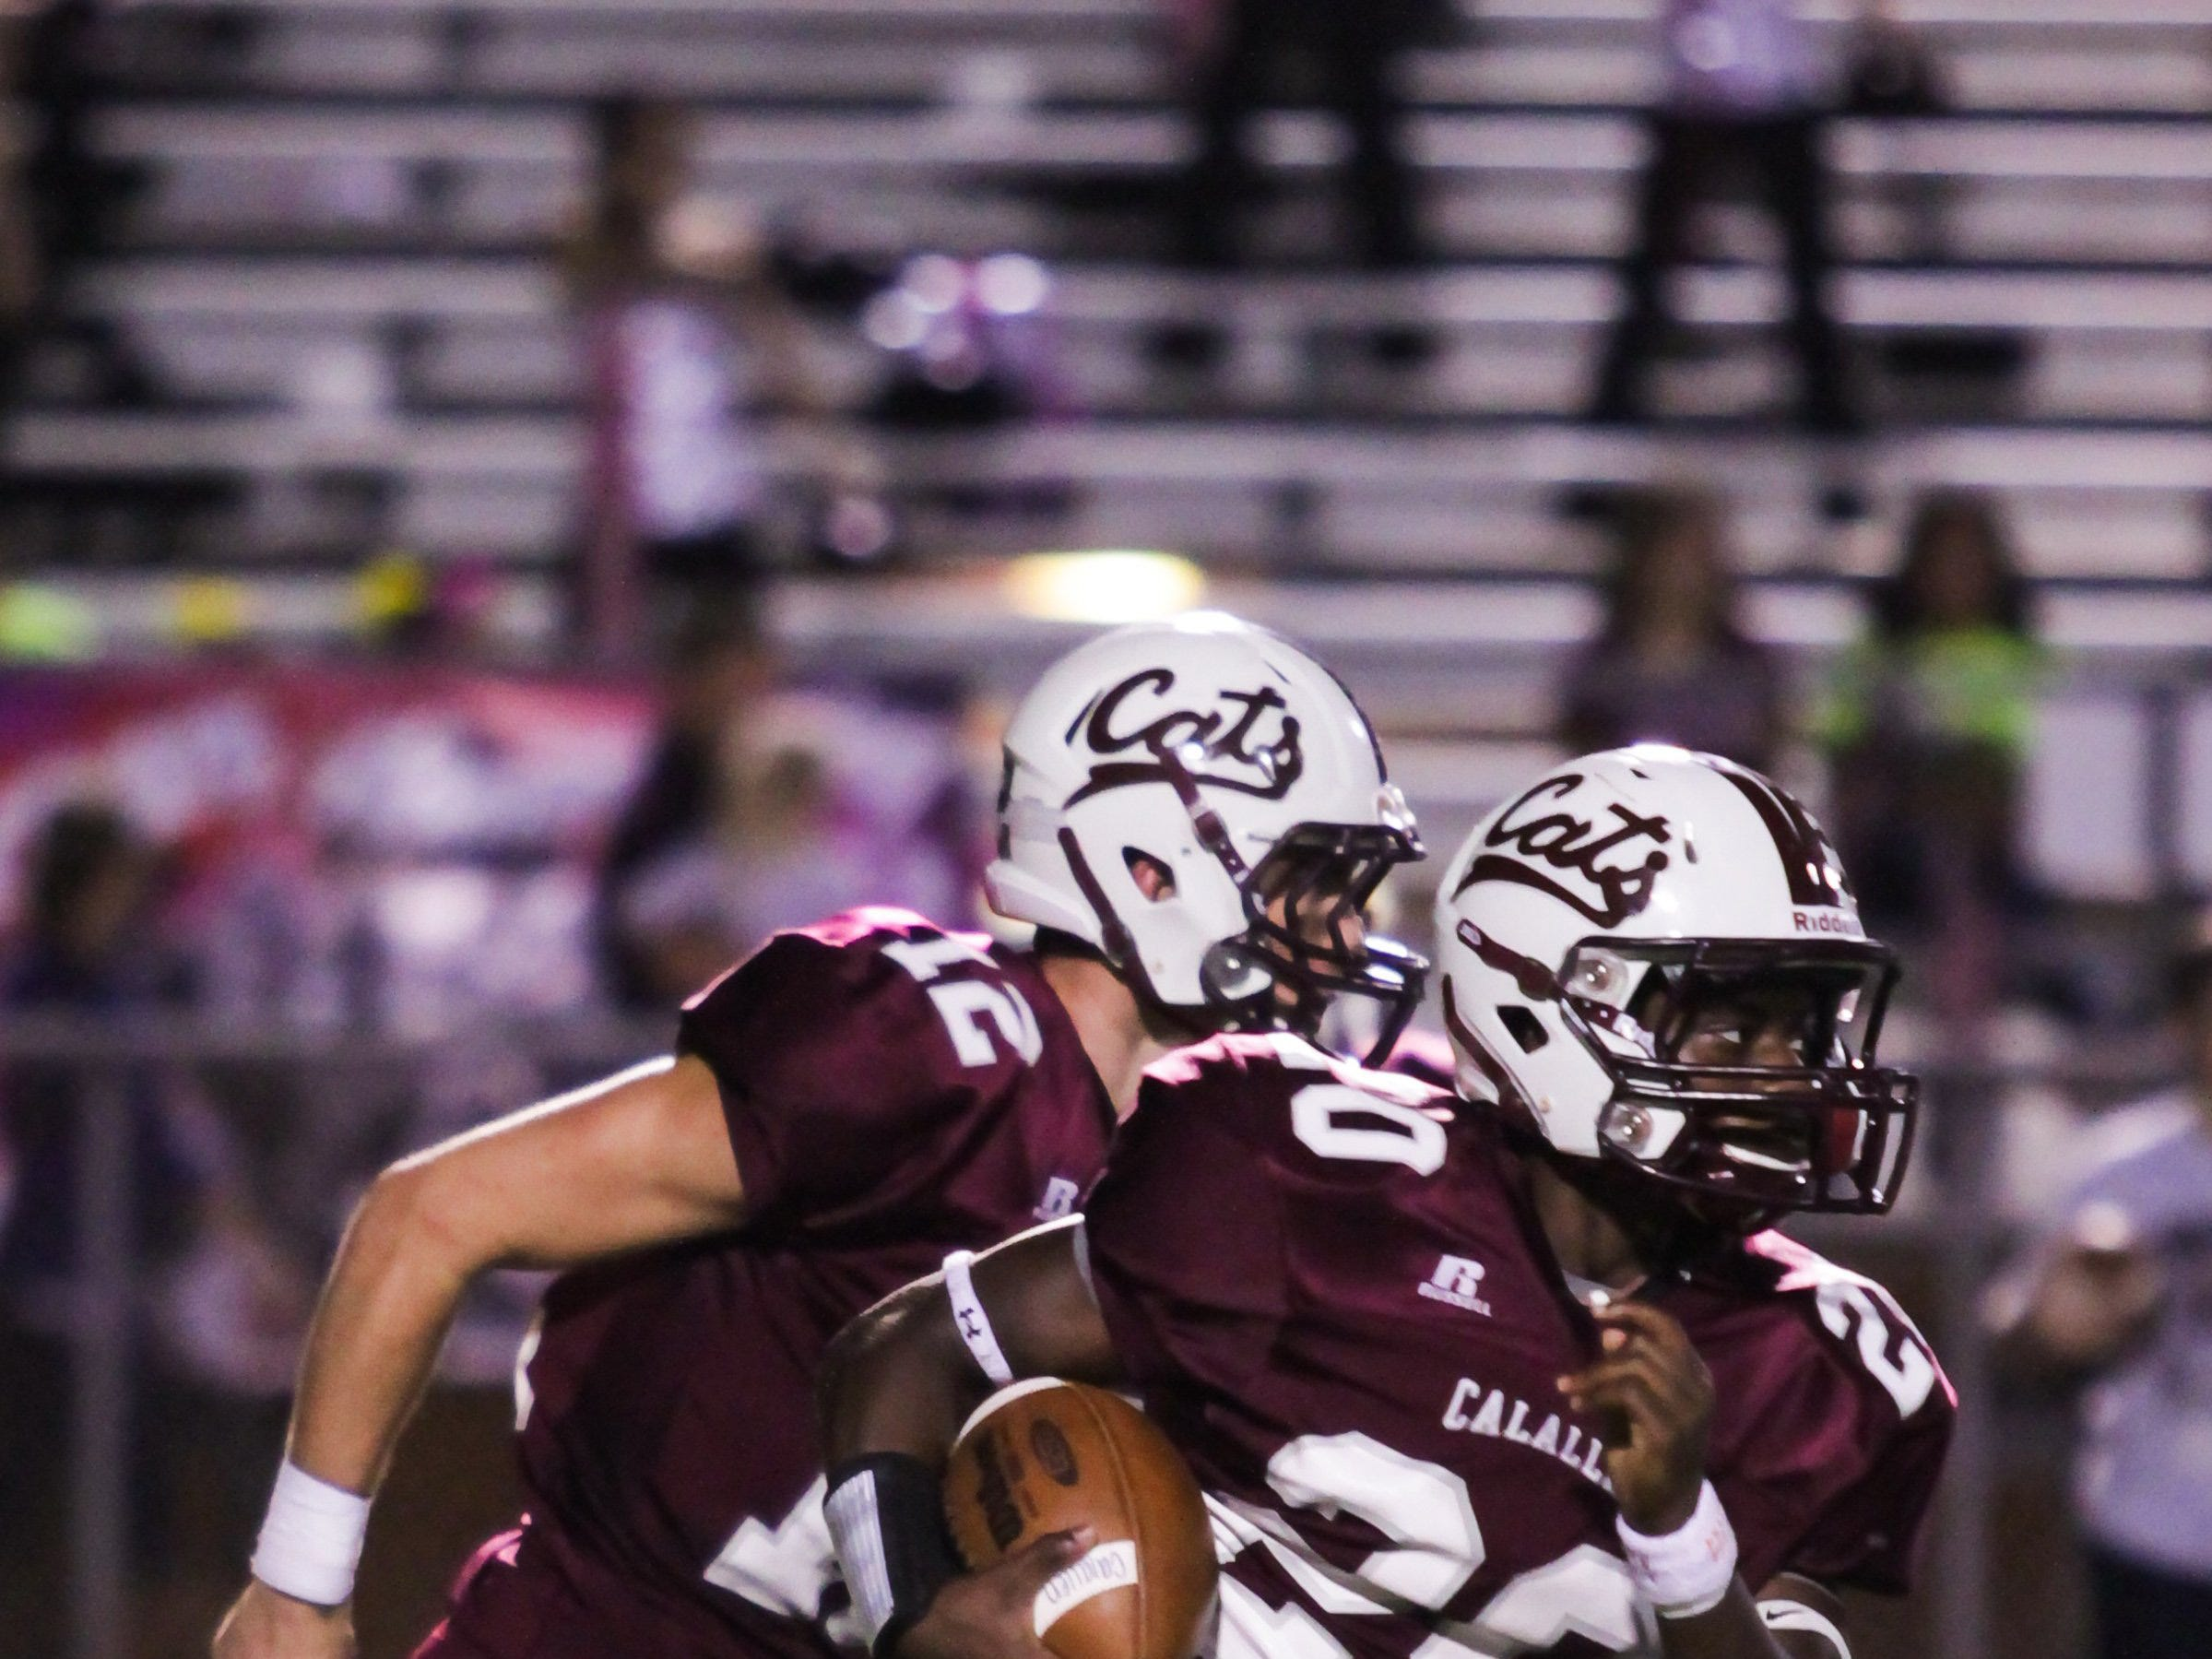 Micah DeBenedetto/Special to the Caller-Times